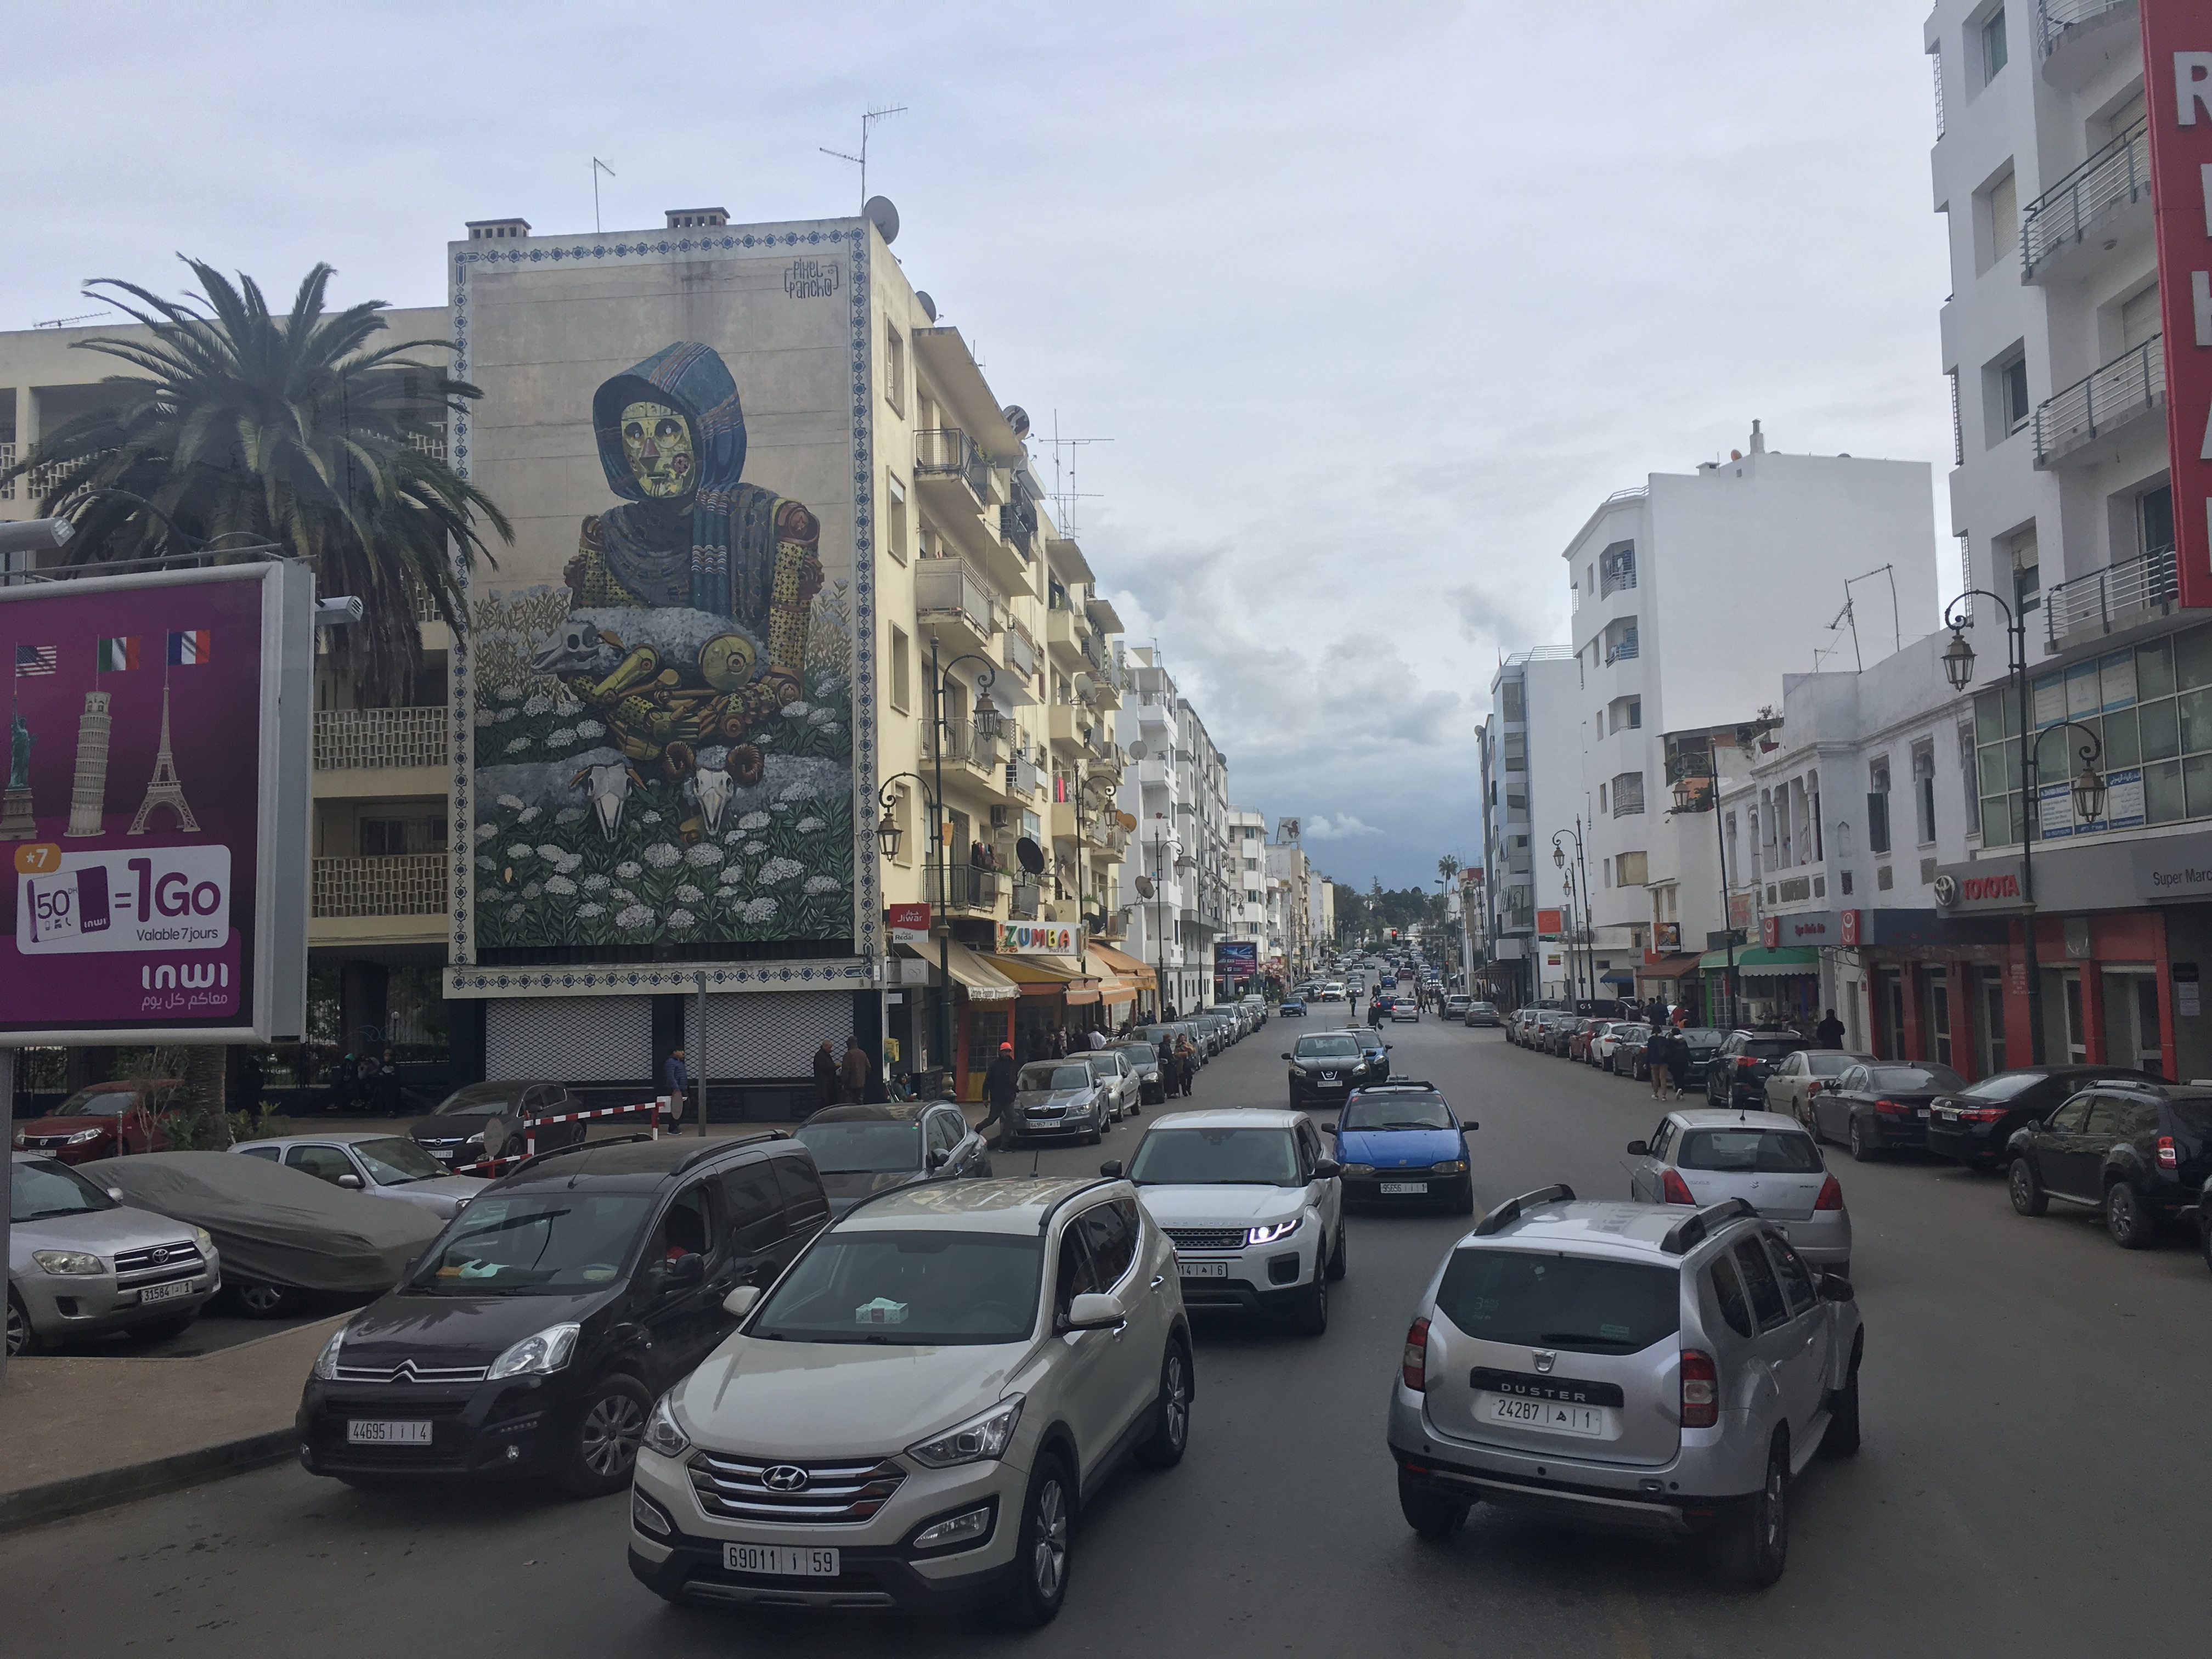 A busy street in the Hassan neighborhood of Rabat